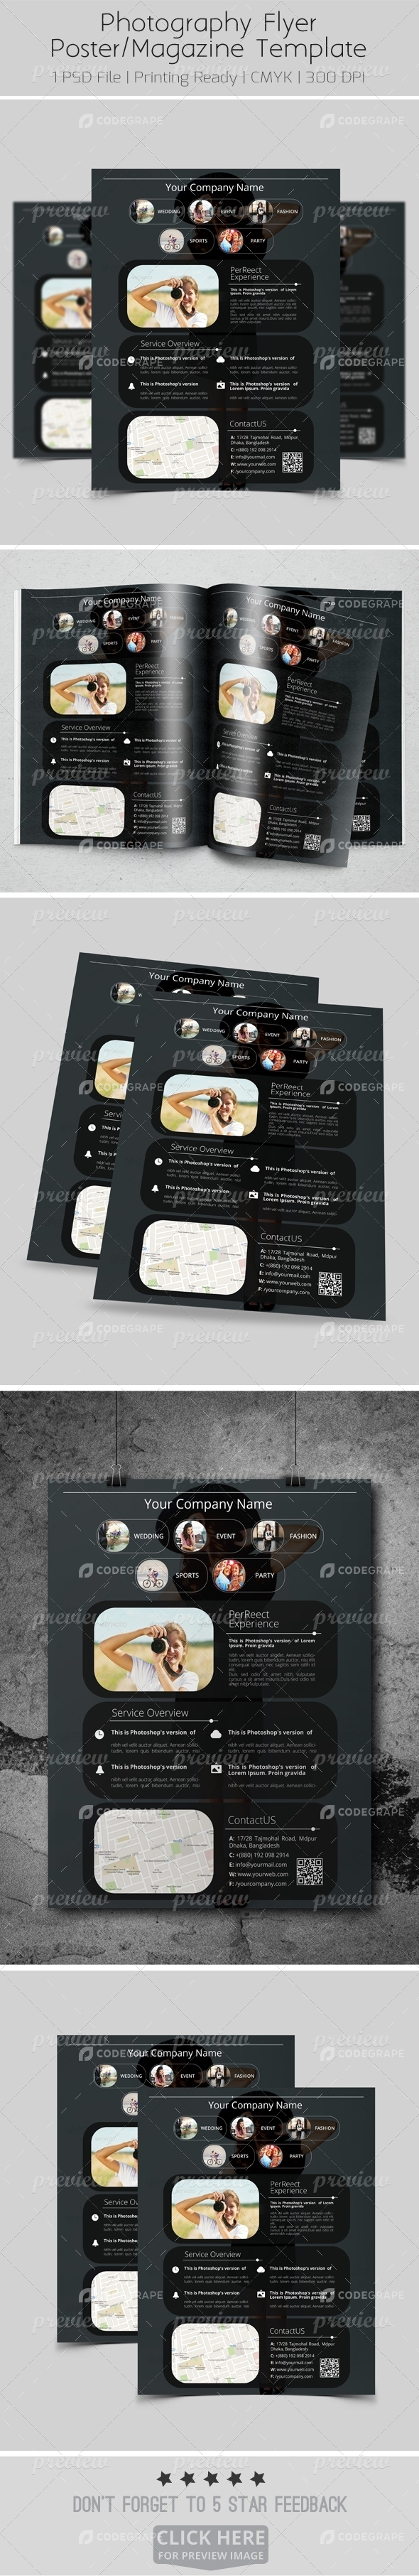 Photography Flyer/Poster/Magazine Template